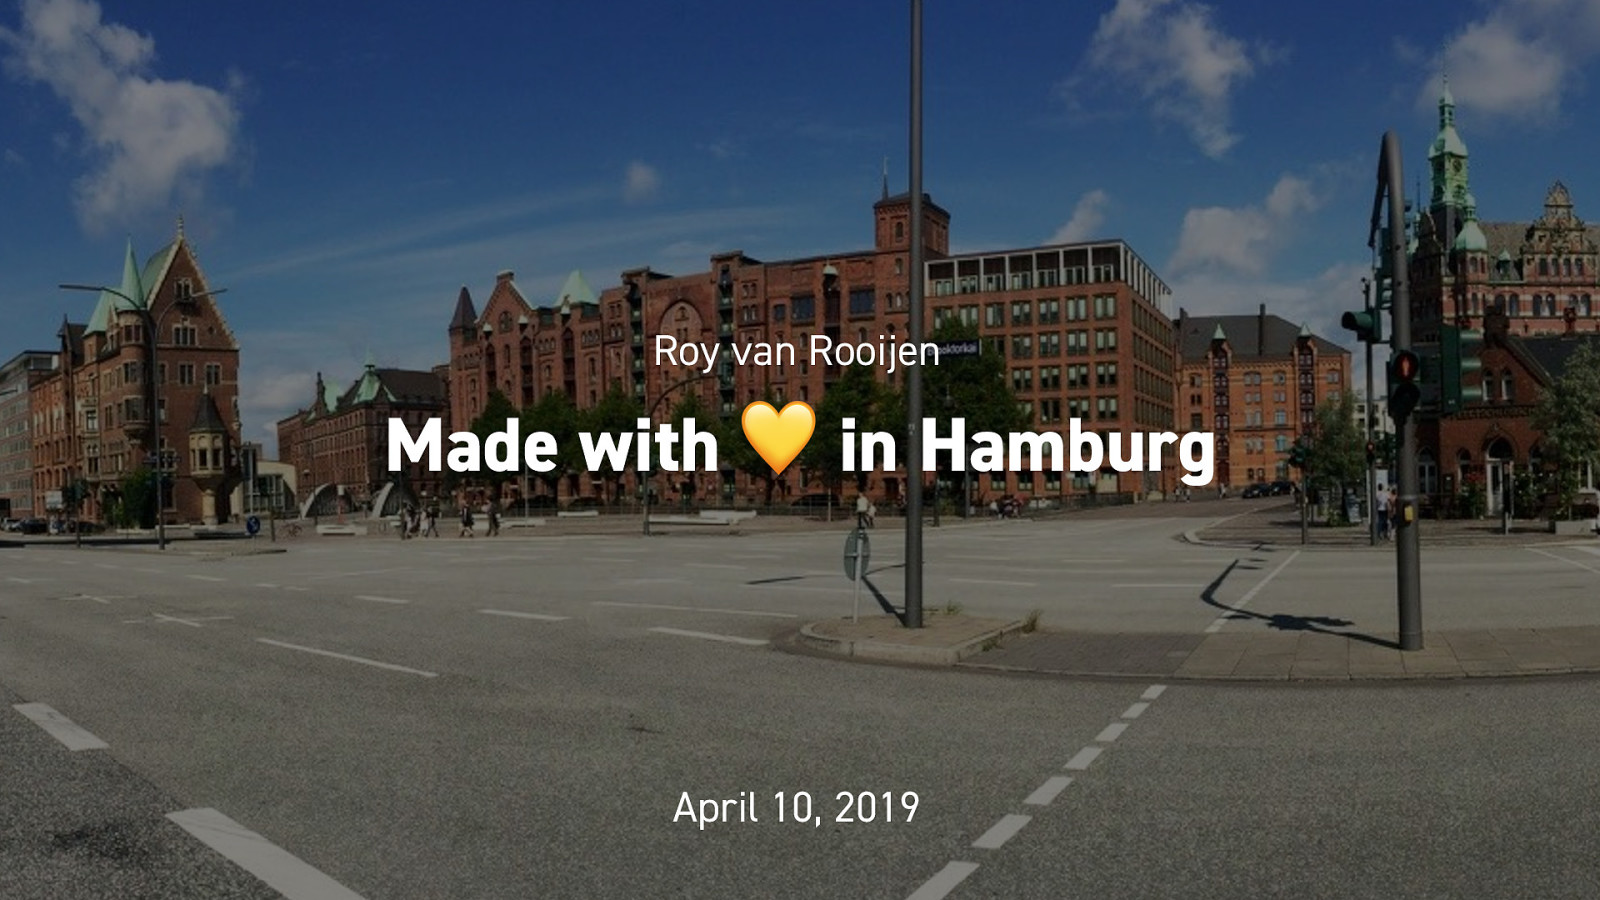 Made with ❤️ in Hamburg